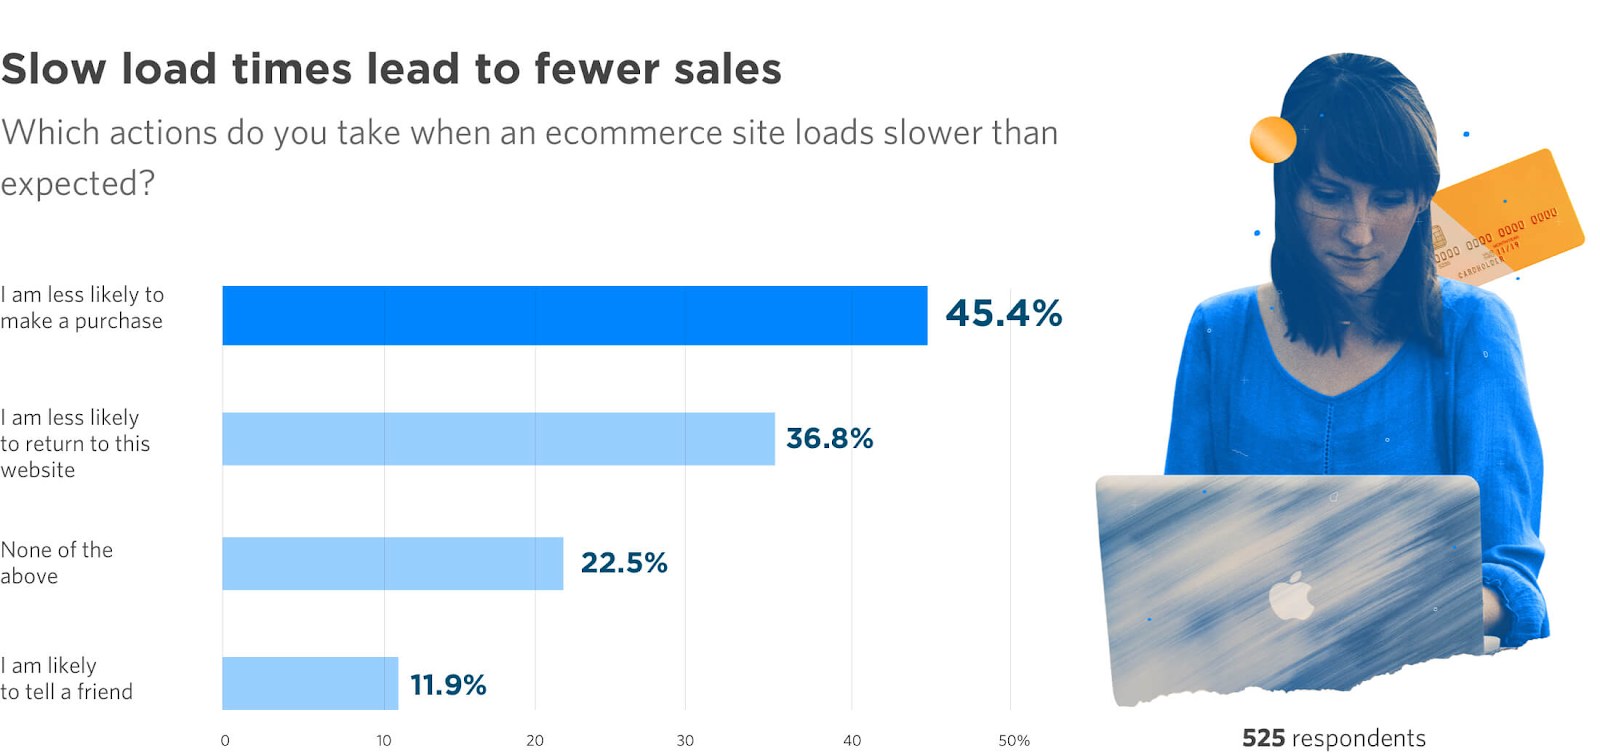 ecommerce load times impact on sales